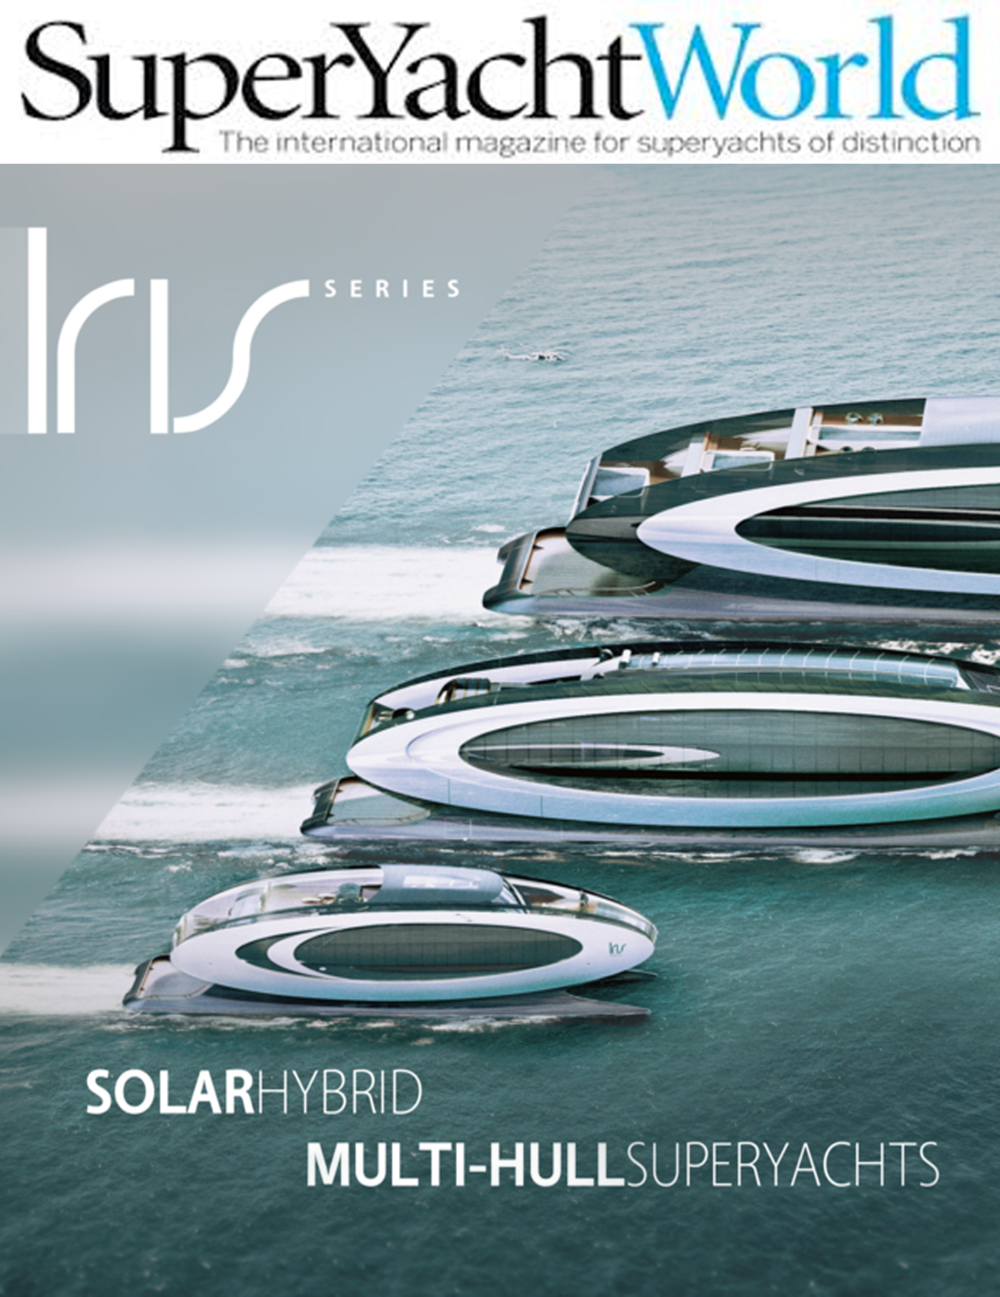 FUTURE SUPERYACHT CONCEPT: ERAMOTIVE'S MULTIHULLS  The Florida-based design team at  Eramotive  have come up with the Iris series, a trio of hybrid multi-hulled superyacht concepts in 45-metre, 75-metre and 125-metre forms. The curious elliptical superstructure shape allows for the maximum coverage of surface areas with photo-voltaic panels that in turn creates a projected zero-emissions cruising speed of ten knots....